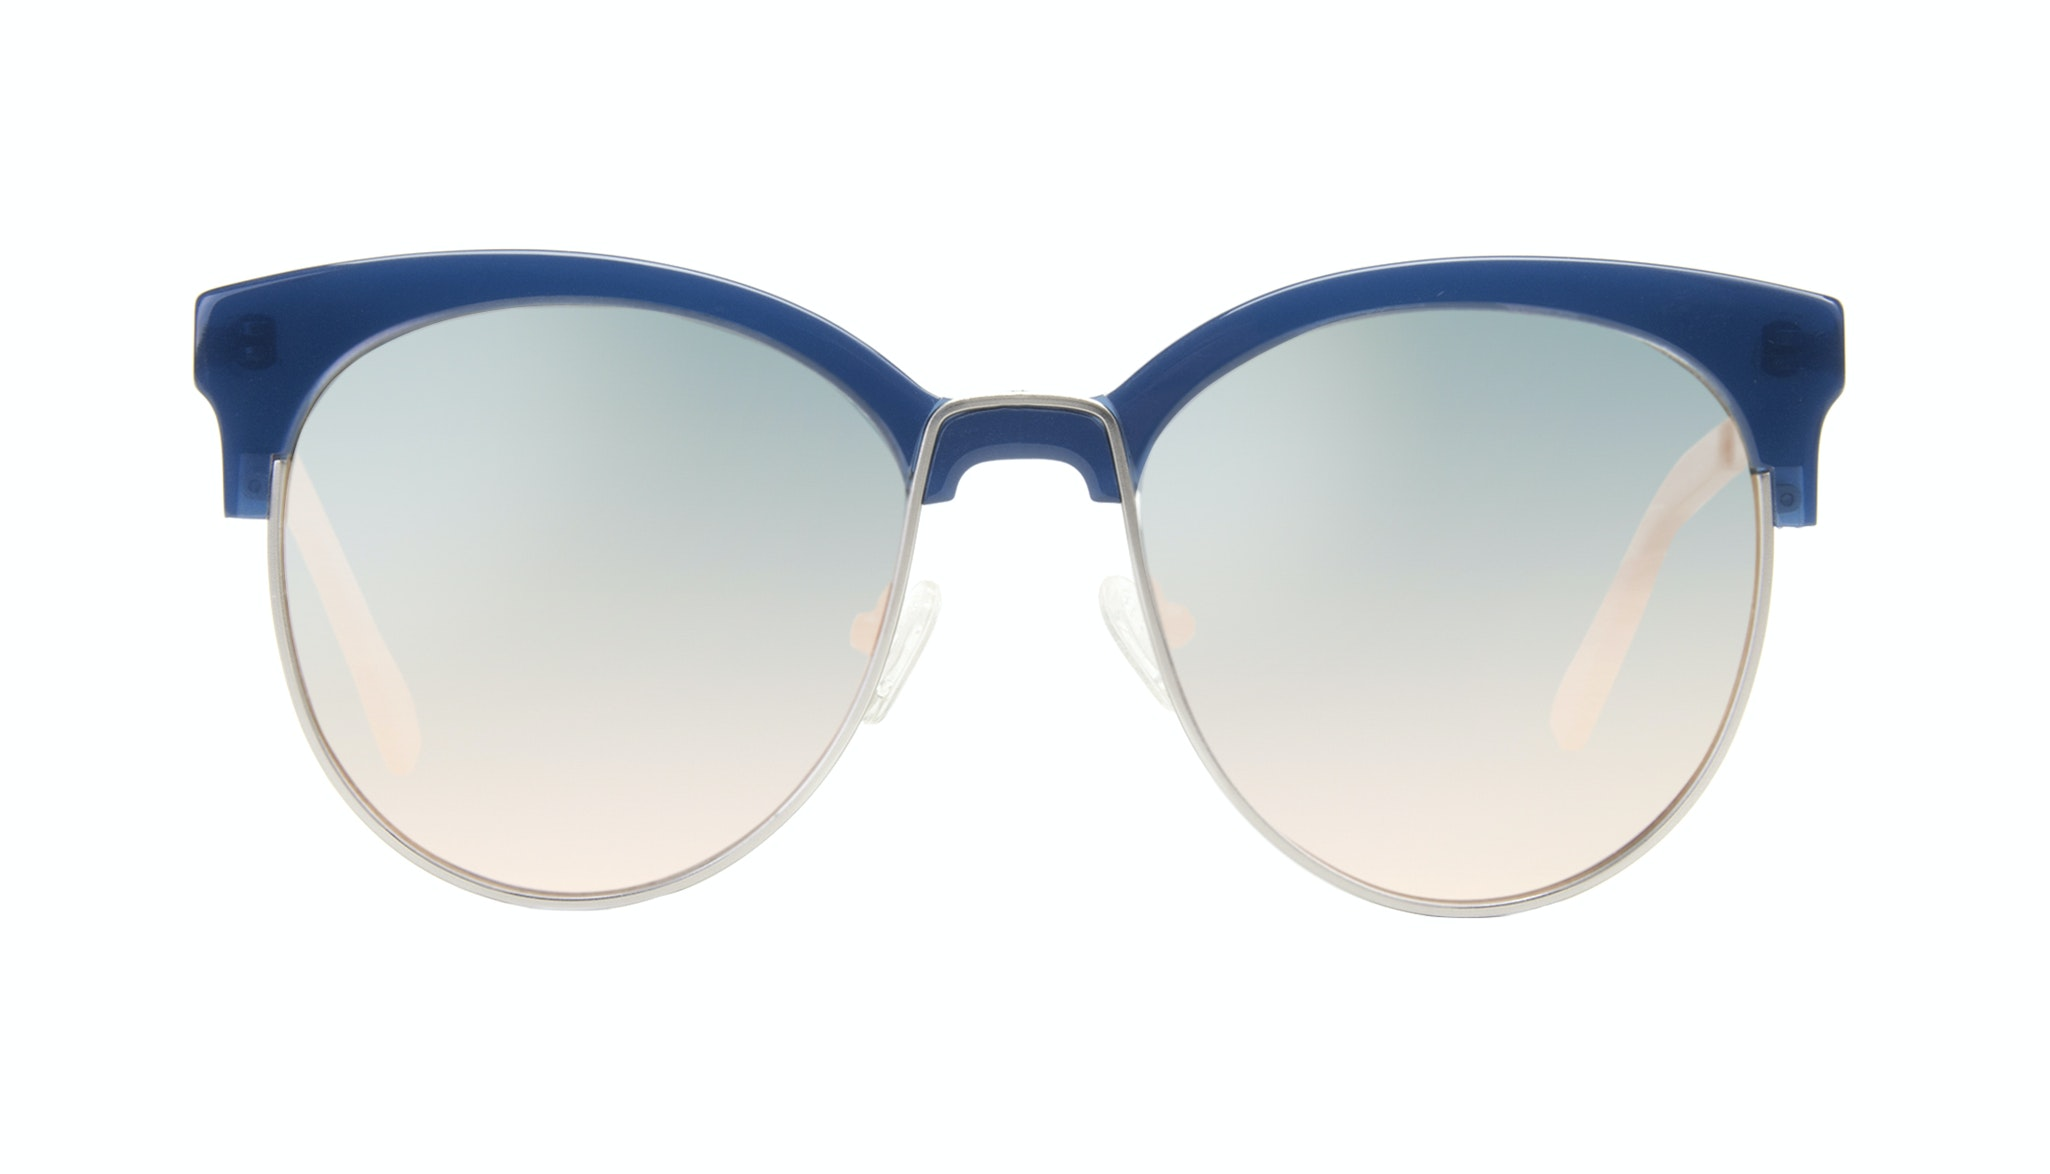 Affordable Fashion Glasses Cat Eye Sunglasses Women Soho Navy